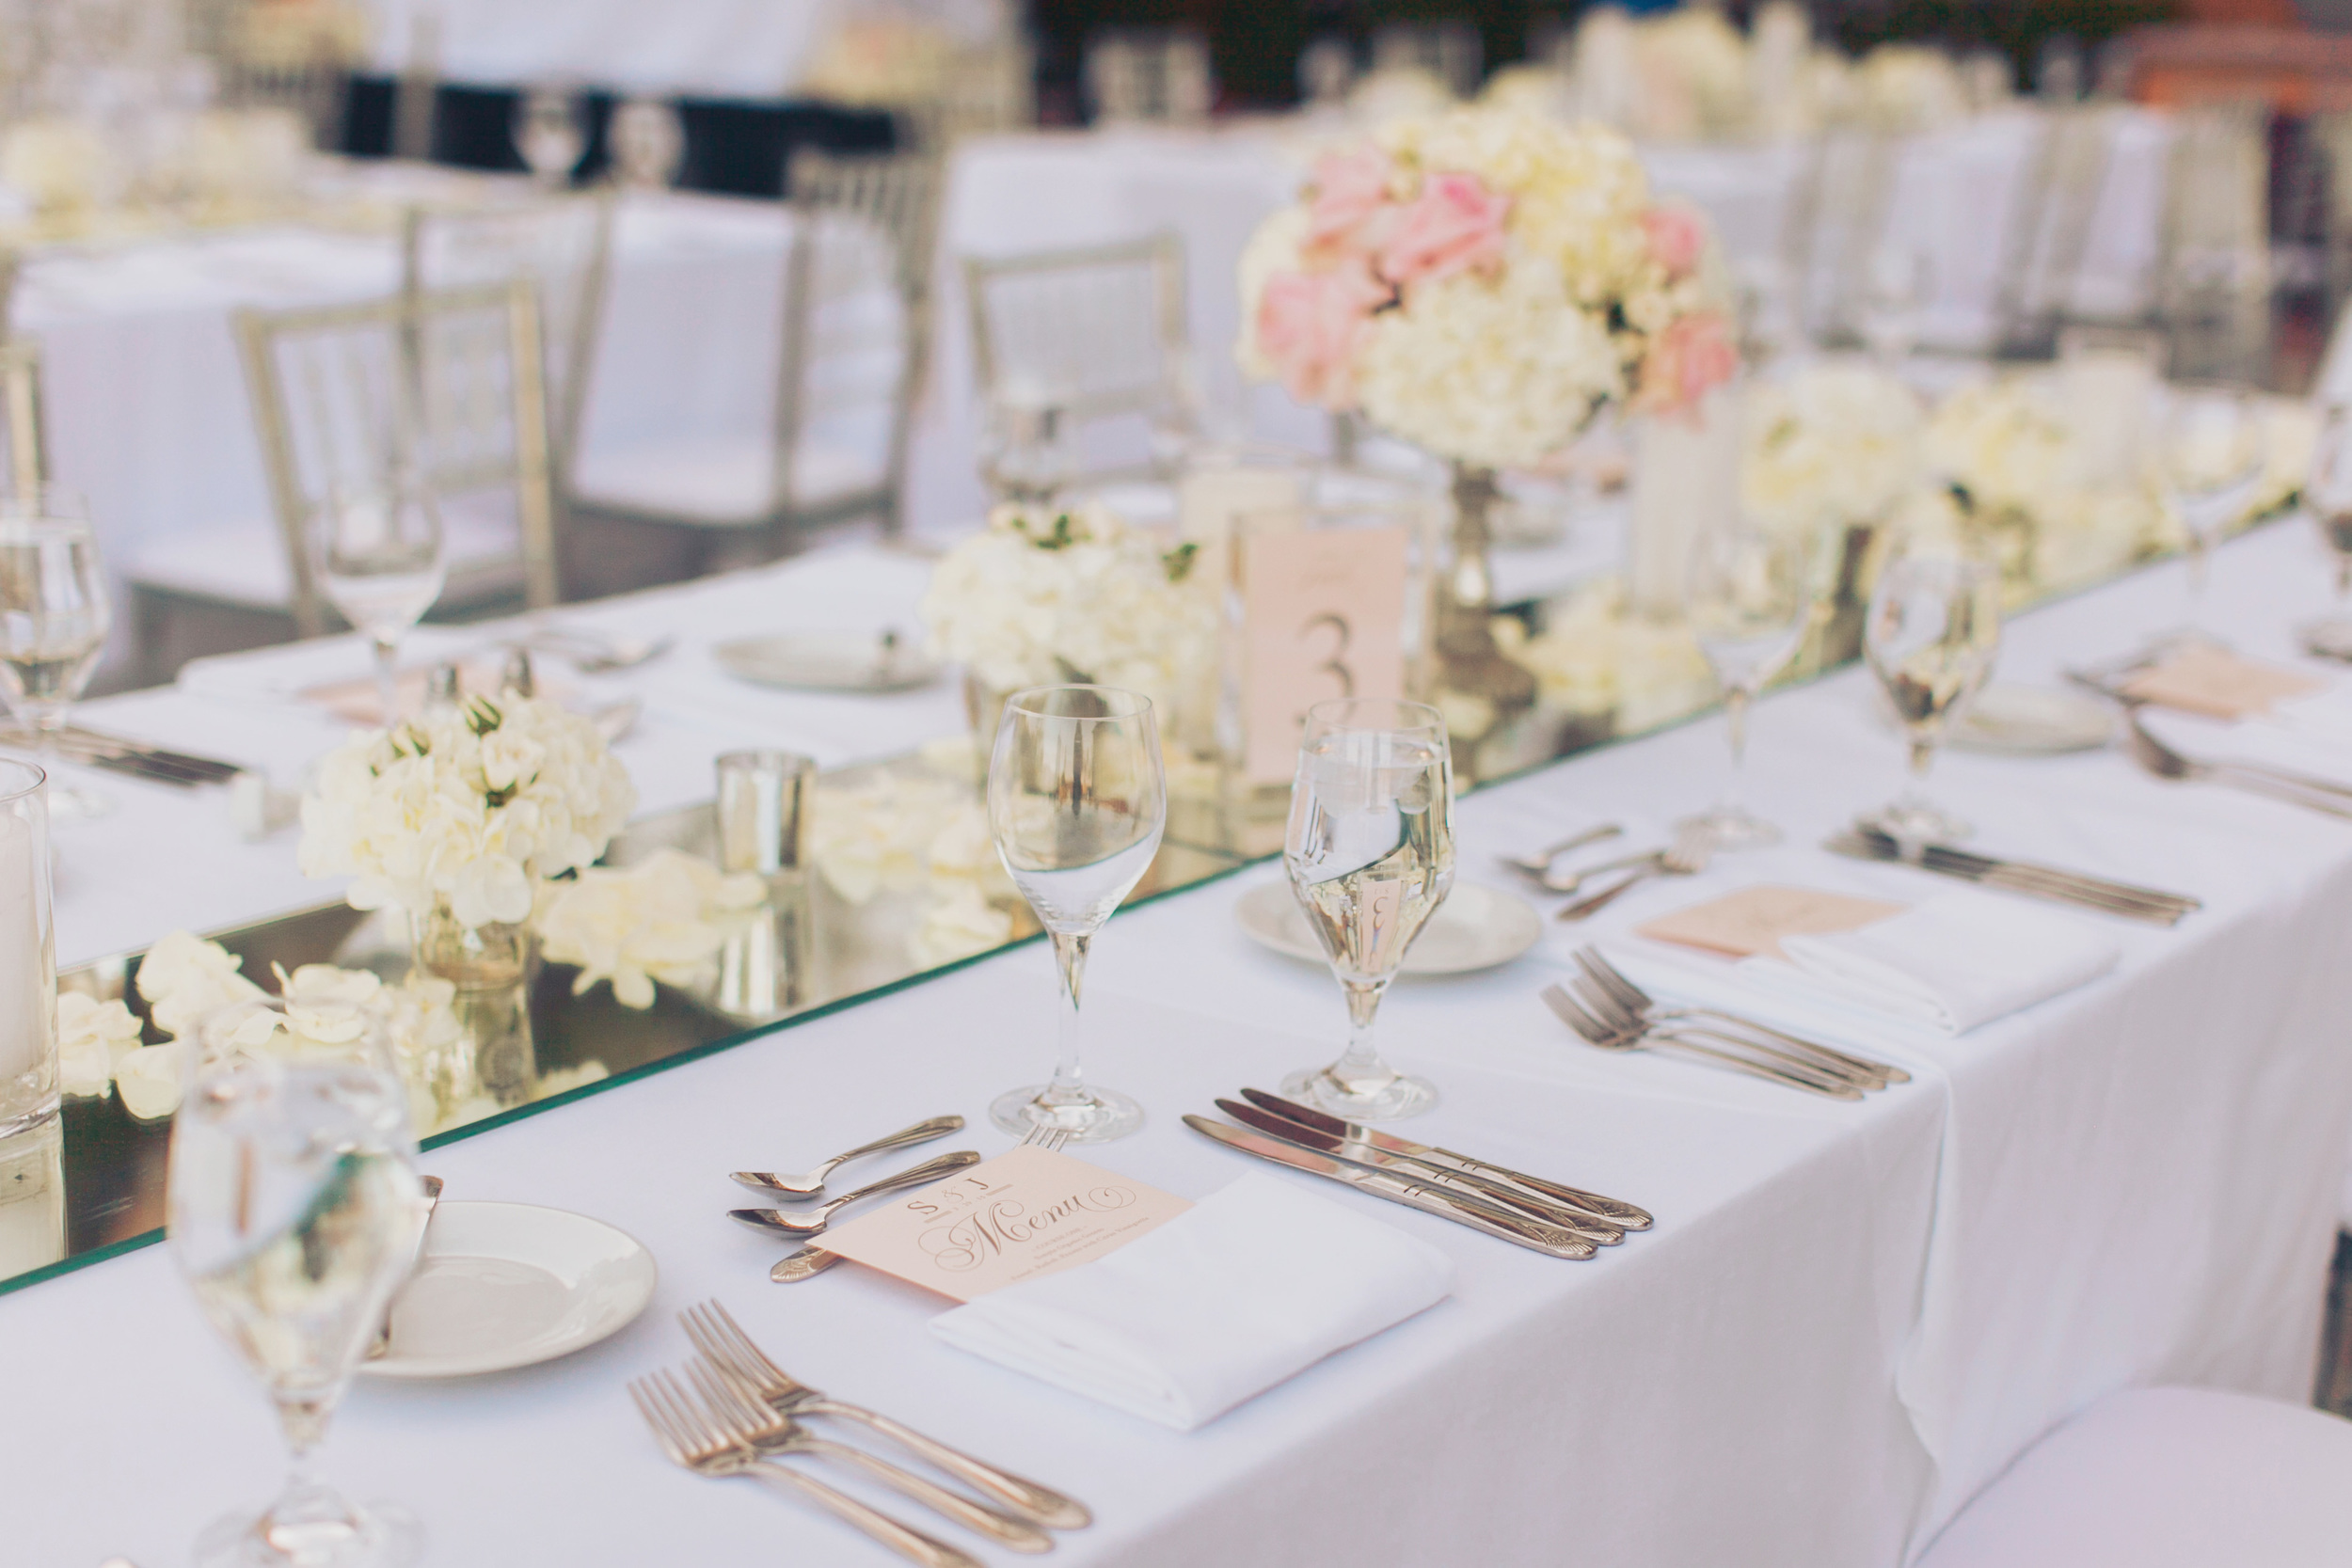 Mirrored table runners add glamour and romance, giving a sexy abs for both candles and flowers. Blush pink personalized menus were placed at each plate setting. Las Vegas Wedding Planner Andrea Eppolito   Wedding at Lake Las Vegas   White and Blush and Grey Wedding